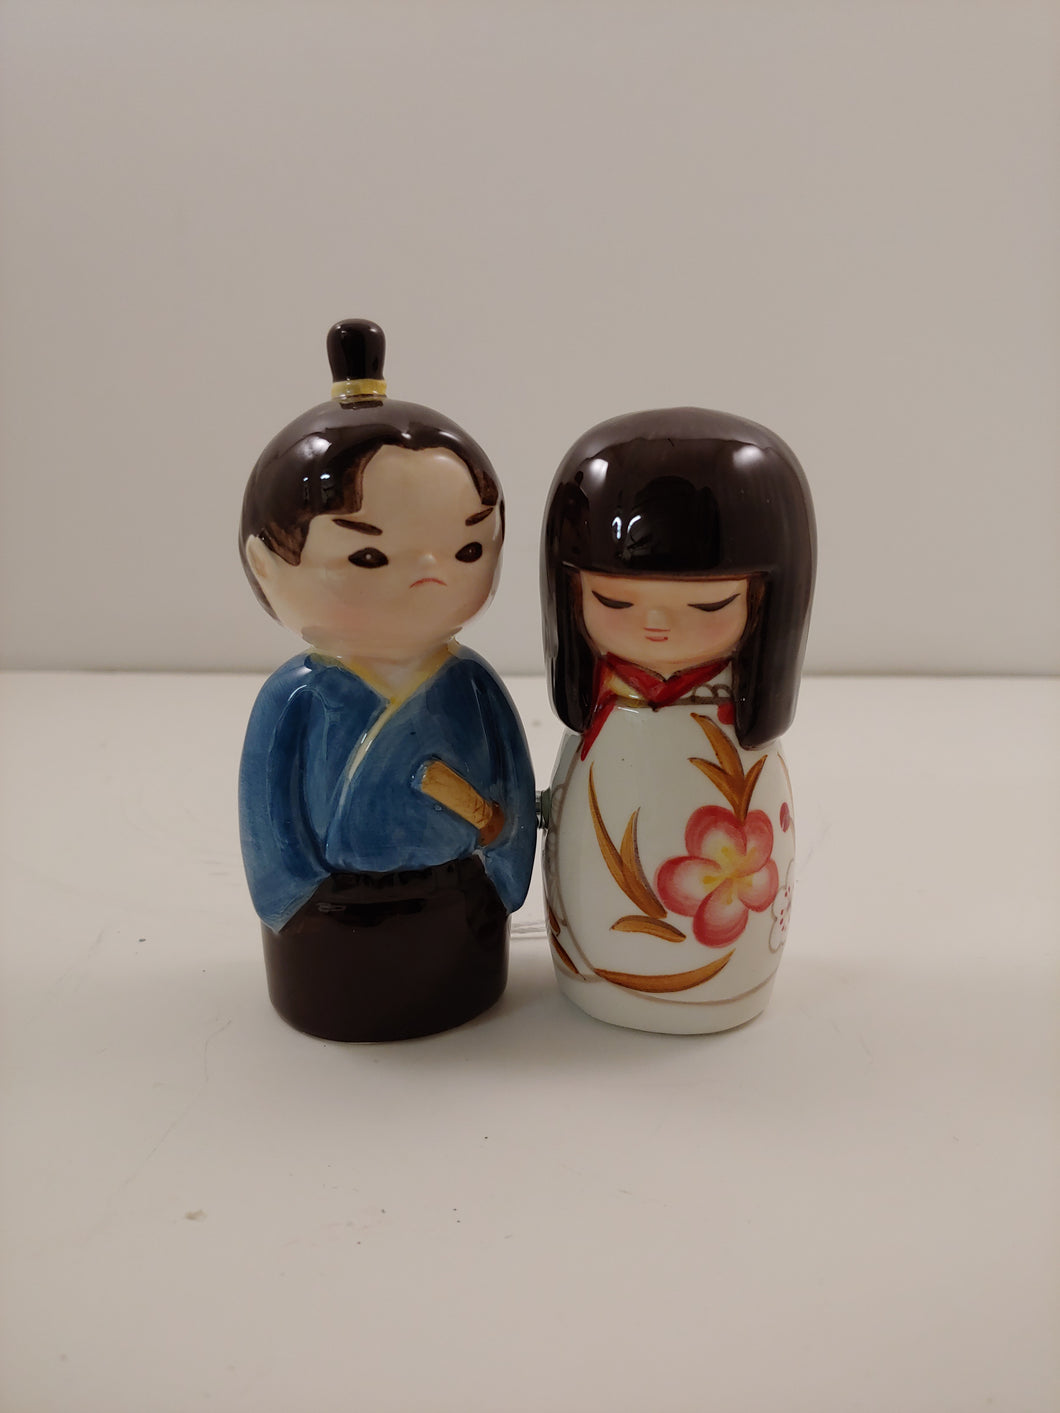 KOKESHI DOLL SALT & PEPPER SHAKER SET